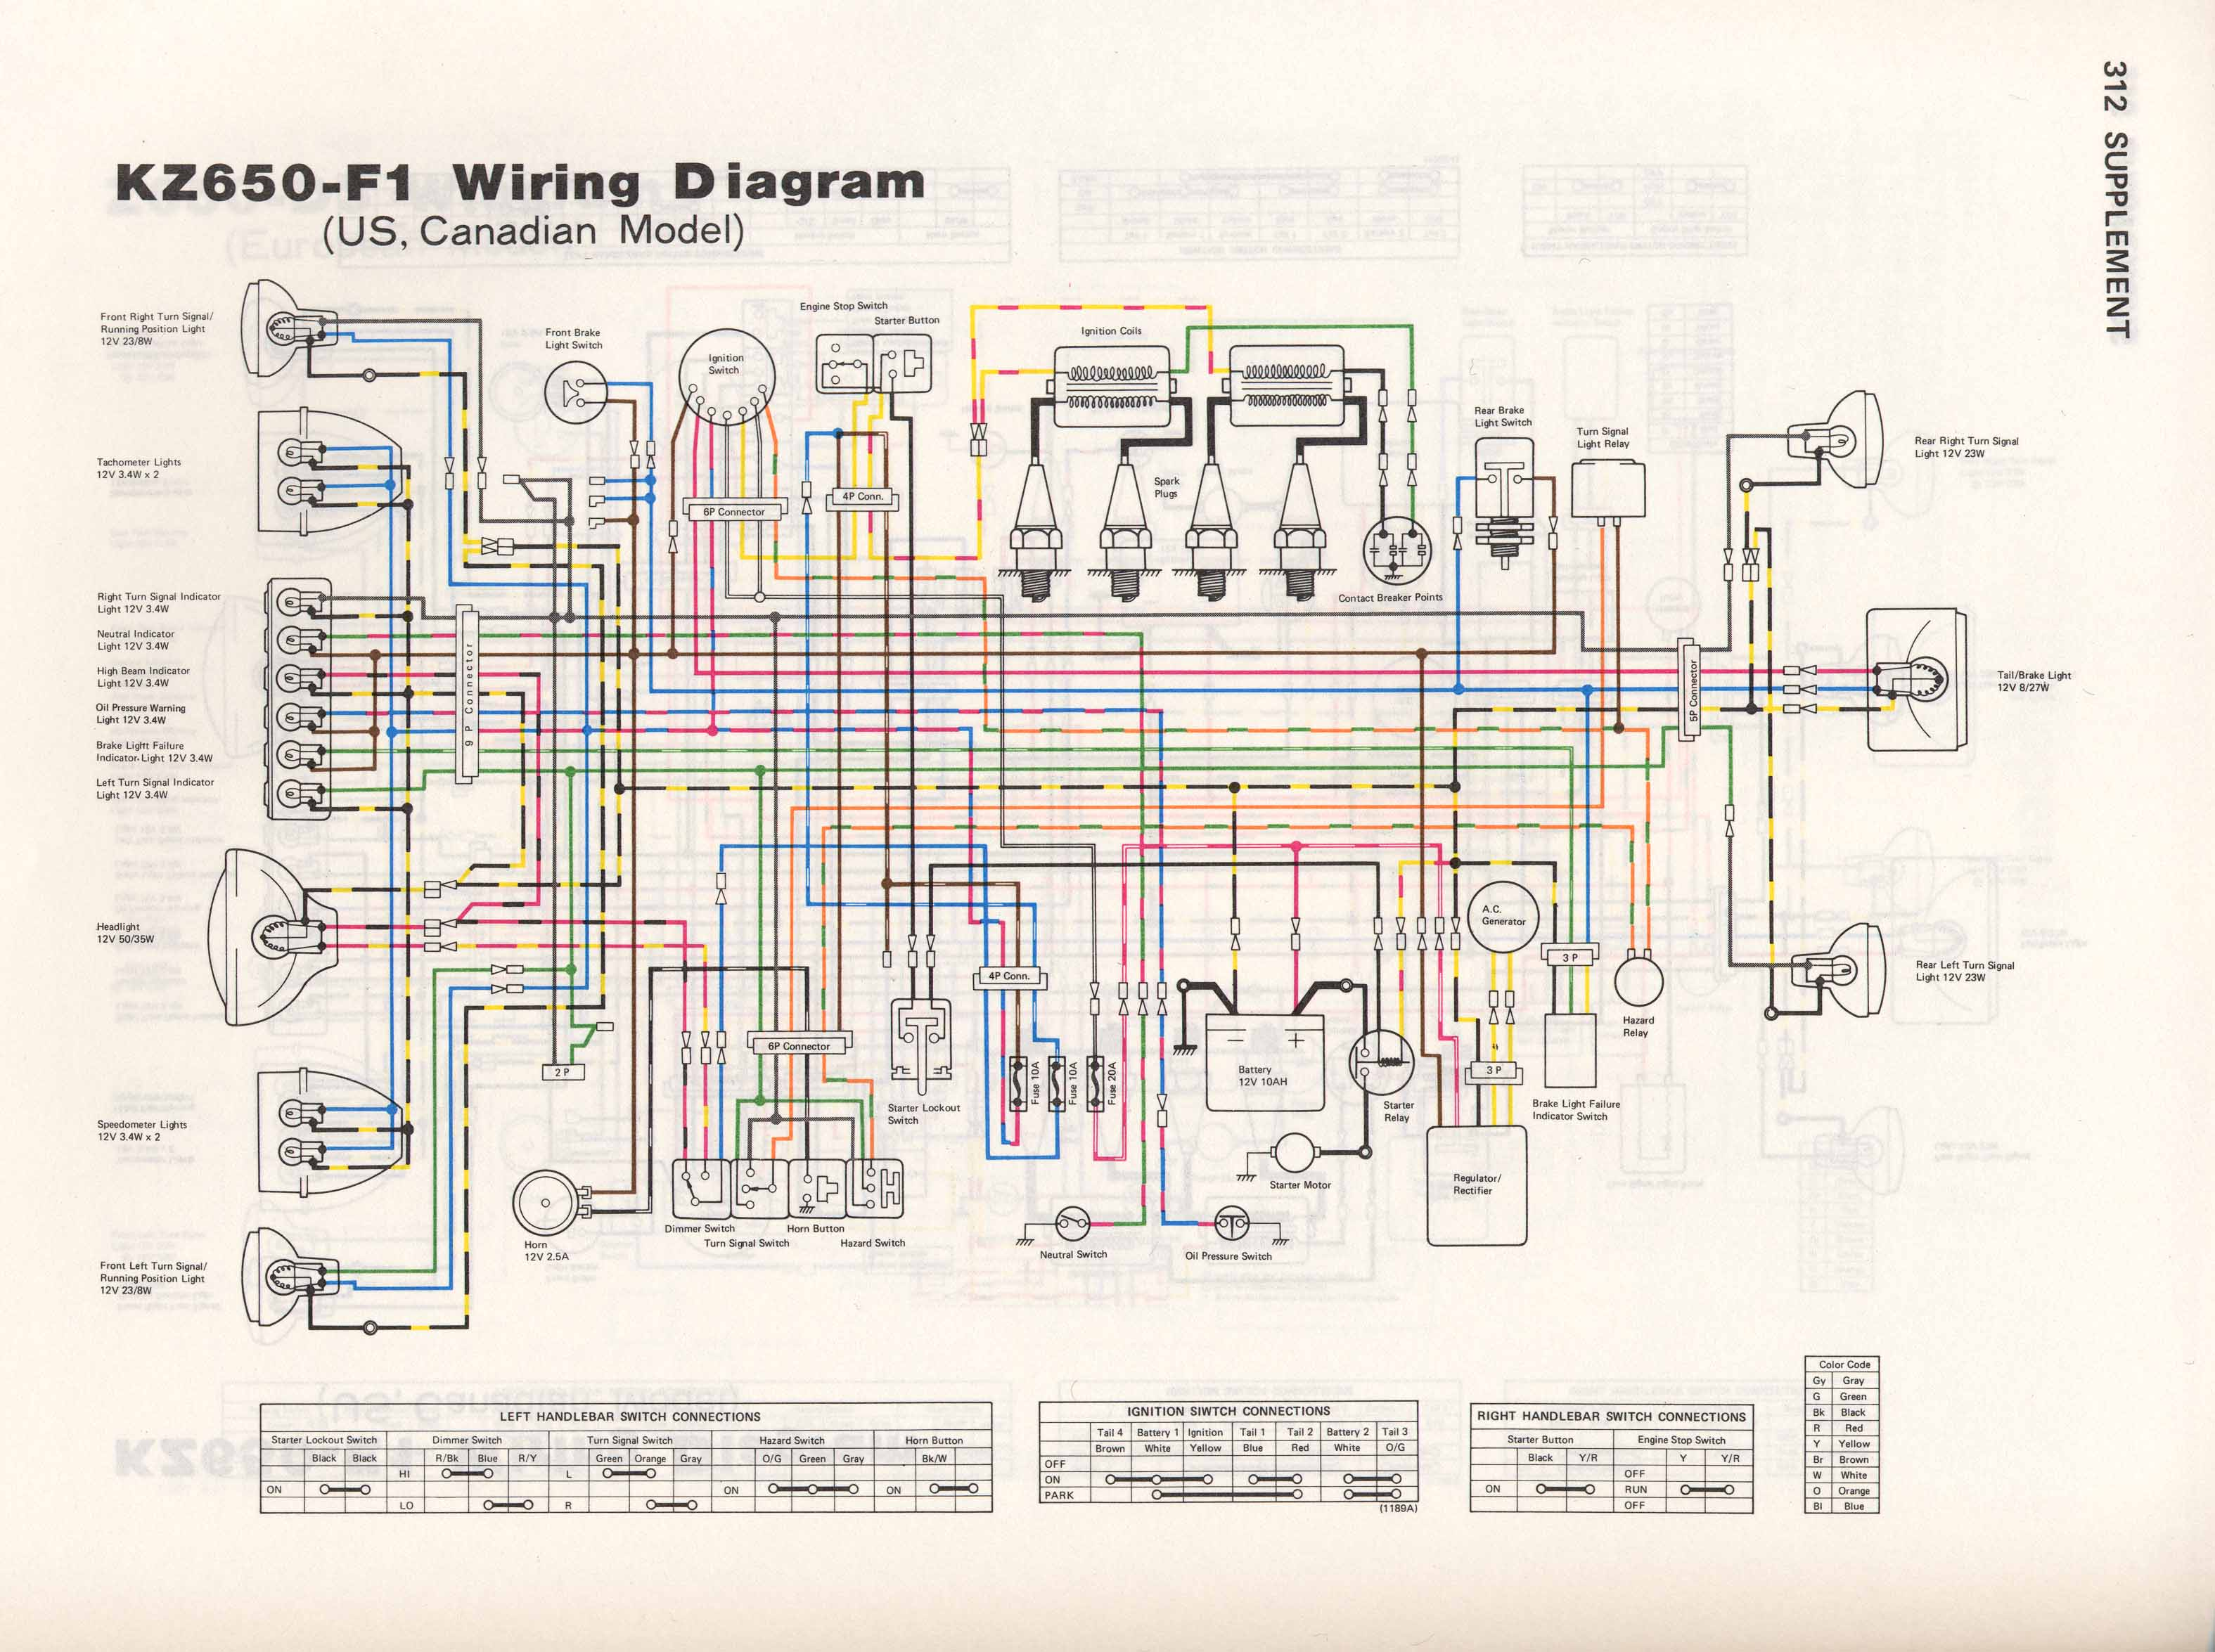 Wiring Diagram For Kawasaki Kz1000 from diagrams.kz650.info